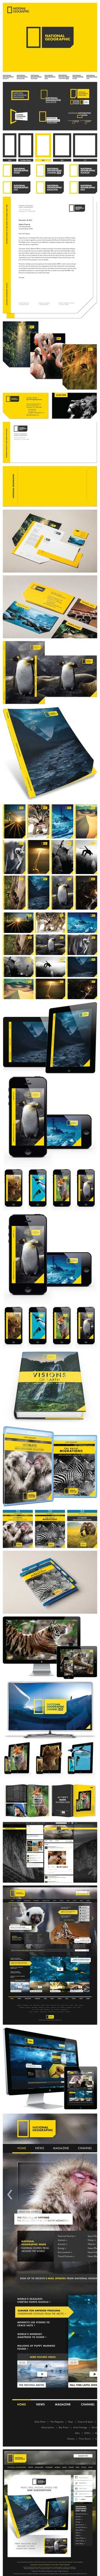 National Geographic Rebrand by Justin Marimon: